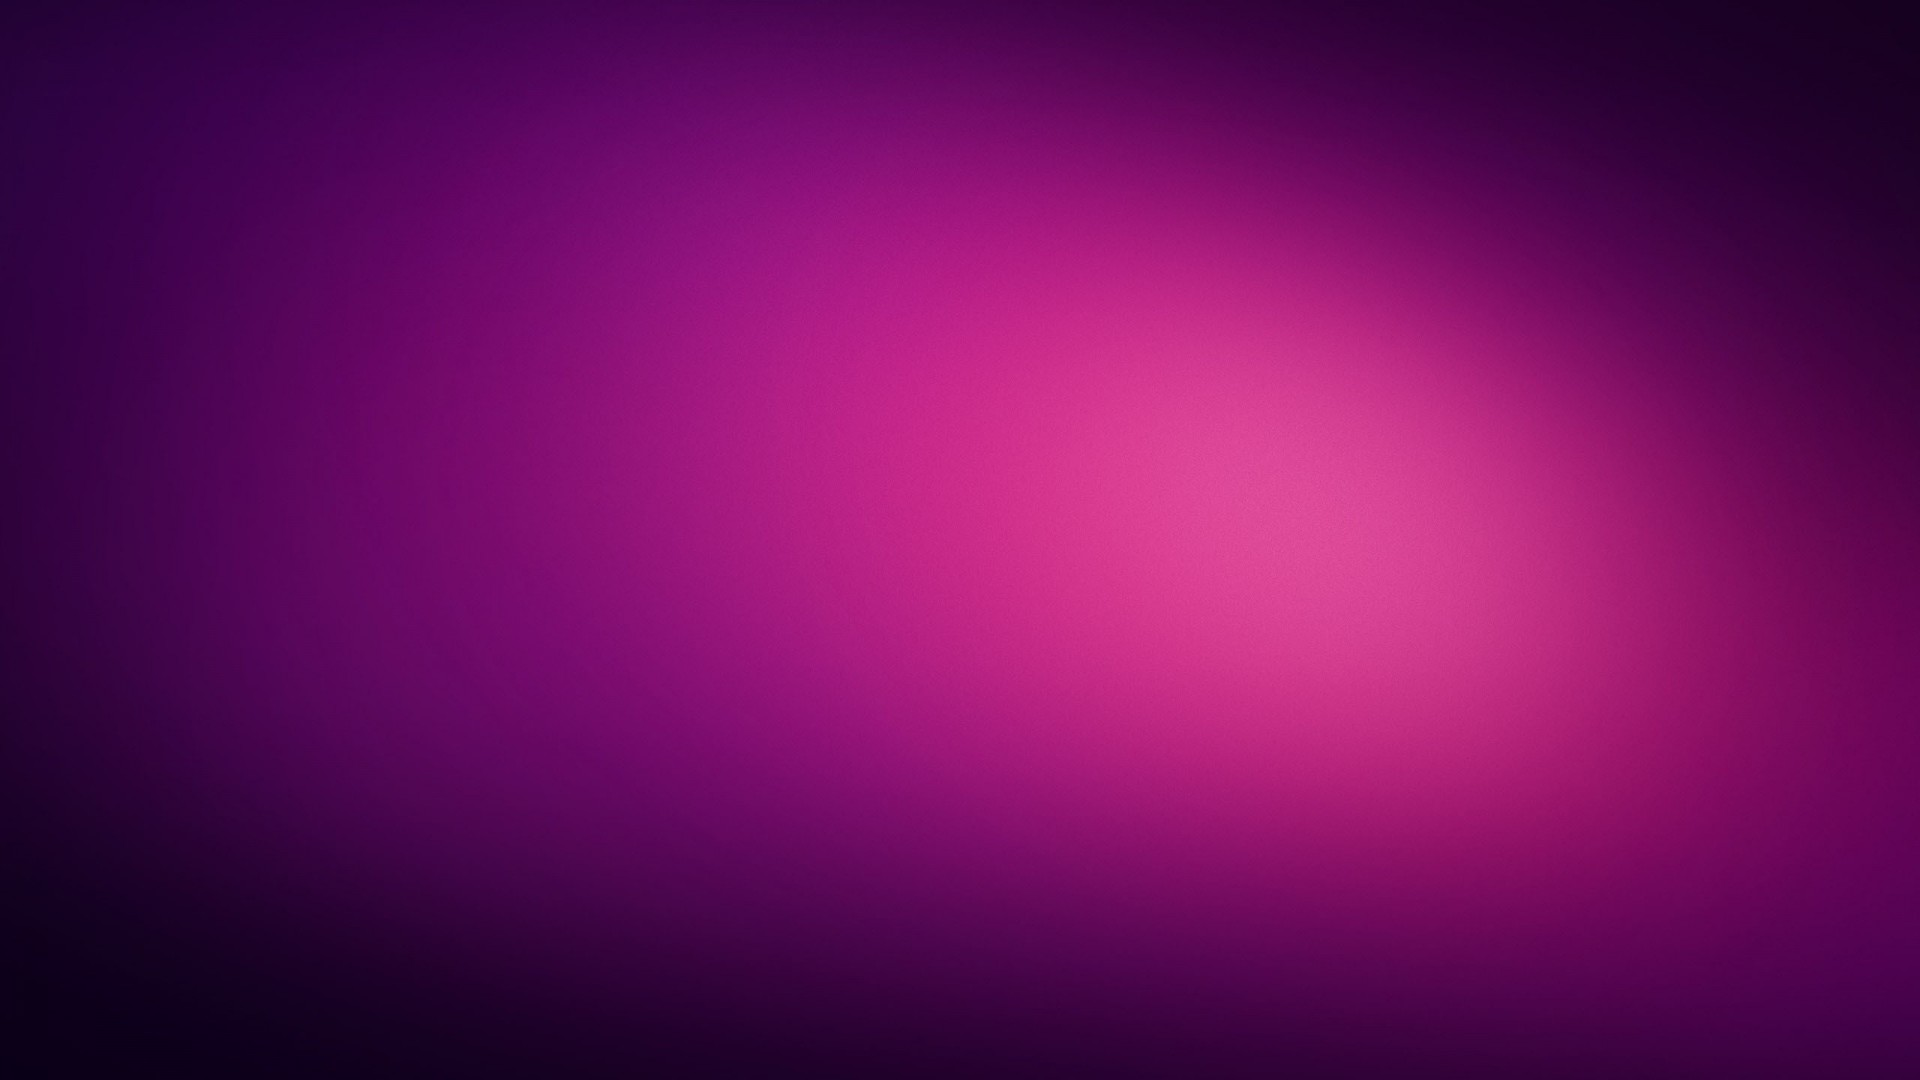 violet color background - wallpaper, high definition, high quality